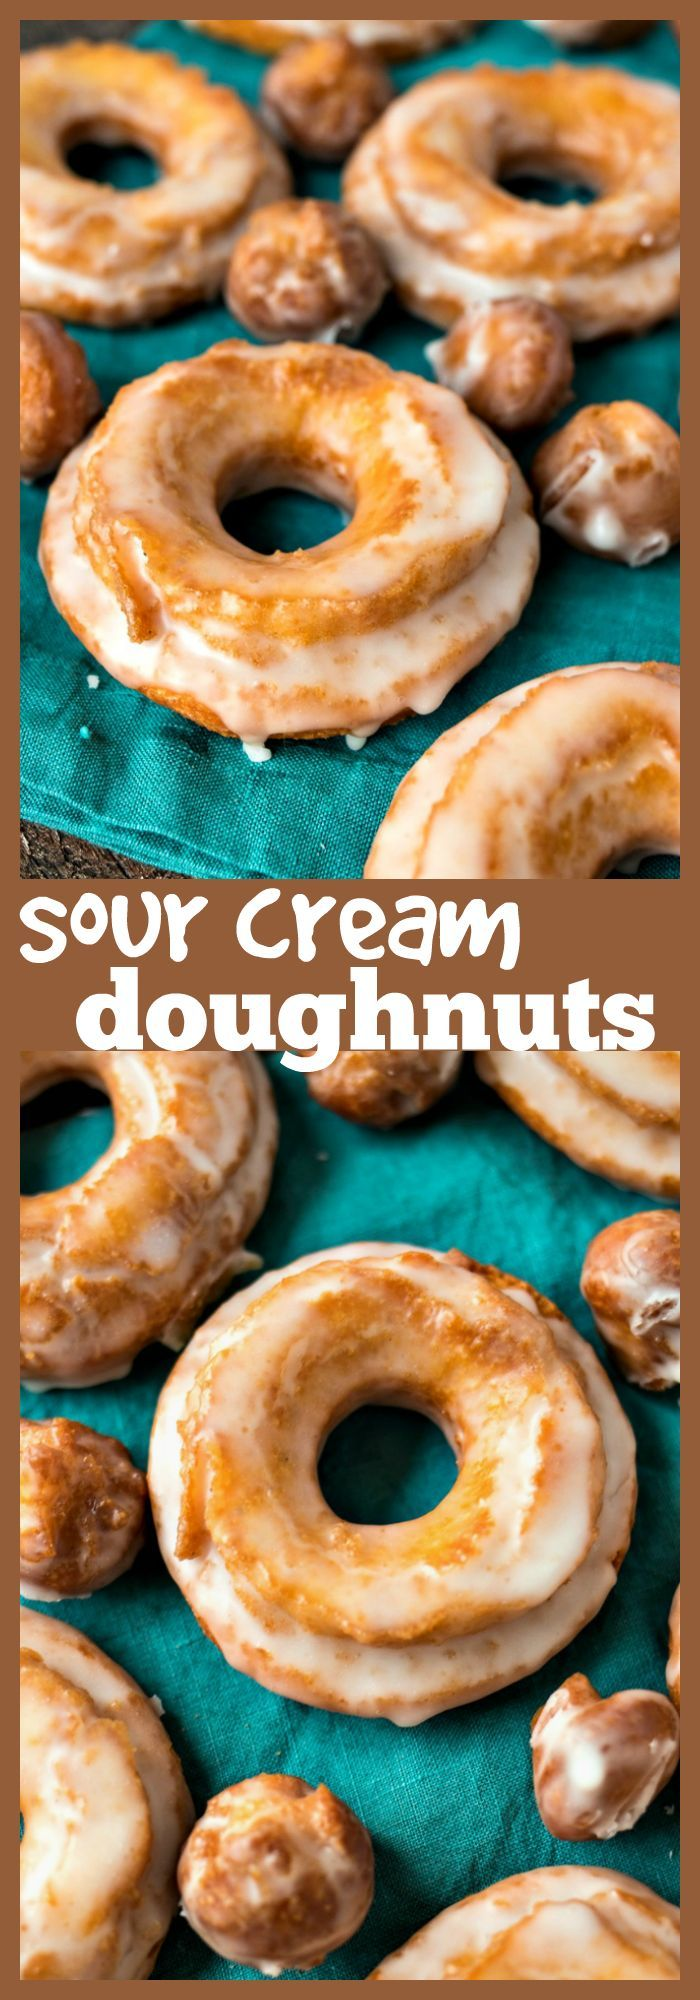 Sour Cream Doughnuts Dense And Crispy On The Outside Moist And Cakey On The Inside These Sour Cream Dou Doughnut Recipe Sour Cream Donut Cream Donut Recipe